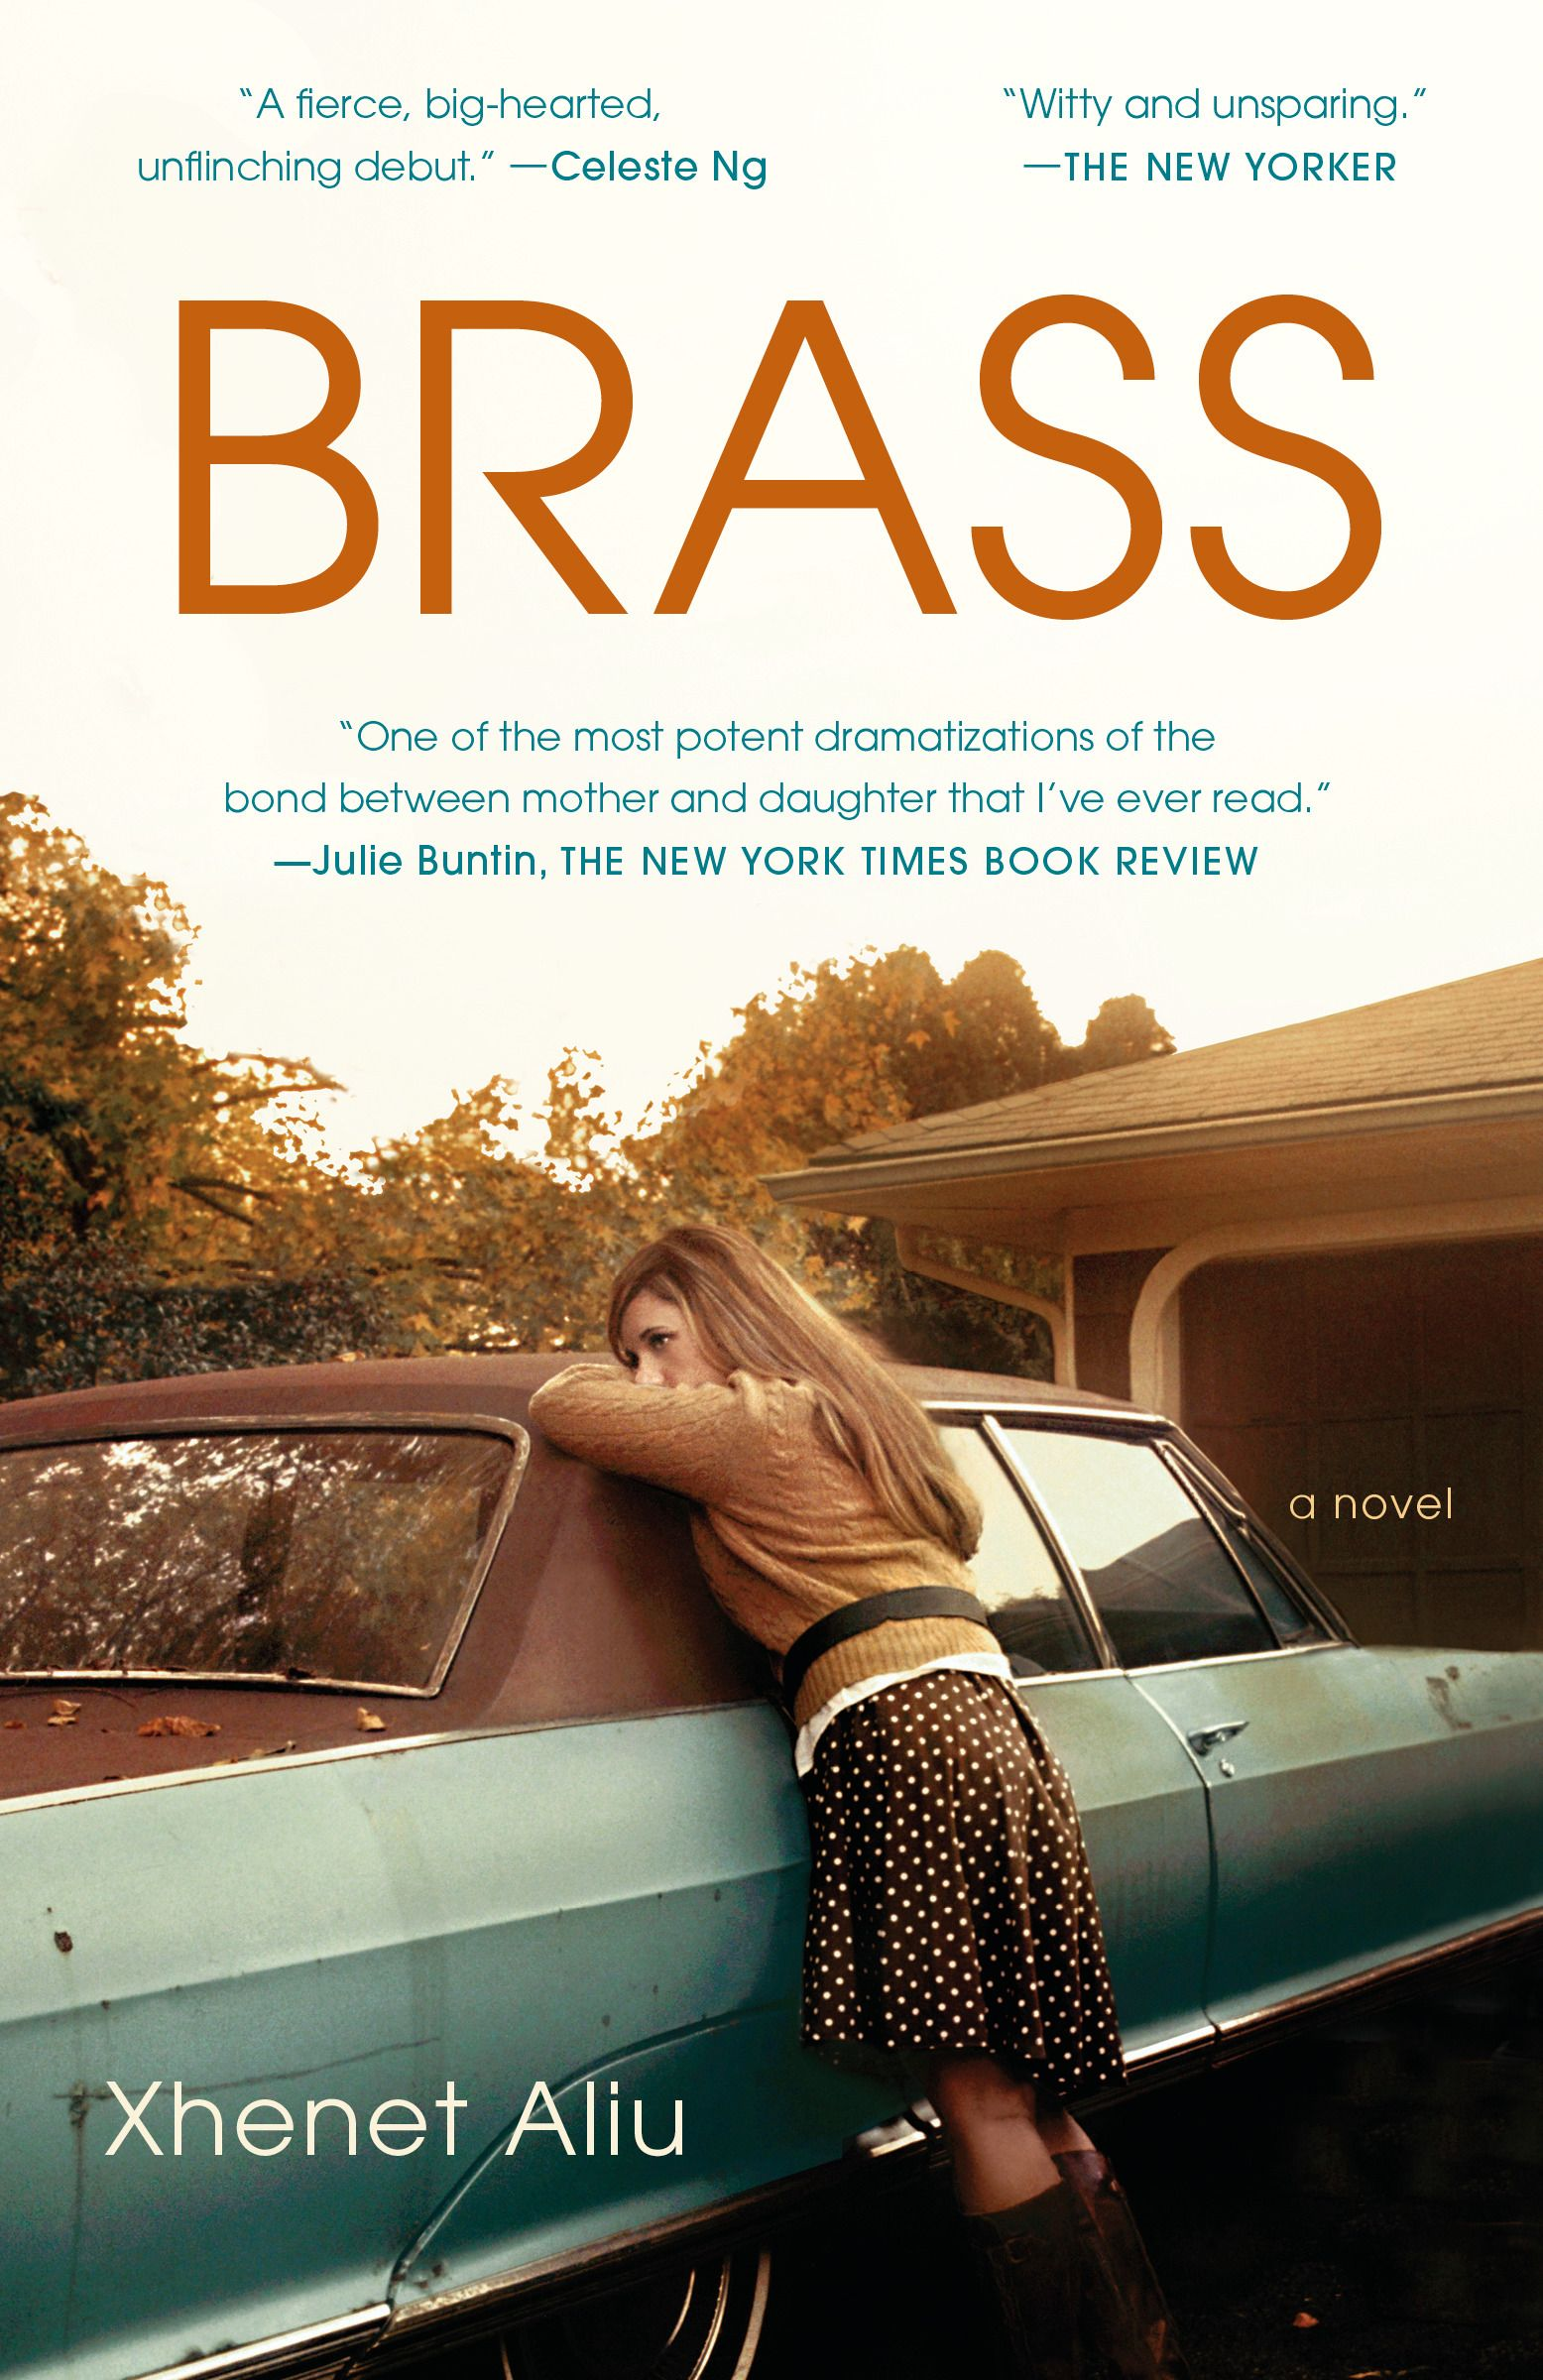 """Brass by Xhenet Aliu - """"A fierce, big-hearted, unflinching debut""""* novel about mothers and daughters, haves and have-nots, and the stark realities behind the American Dream"""